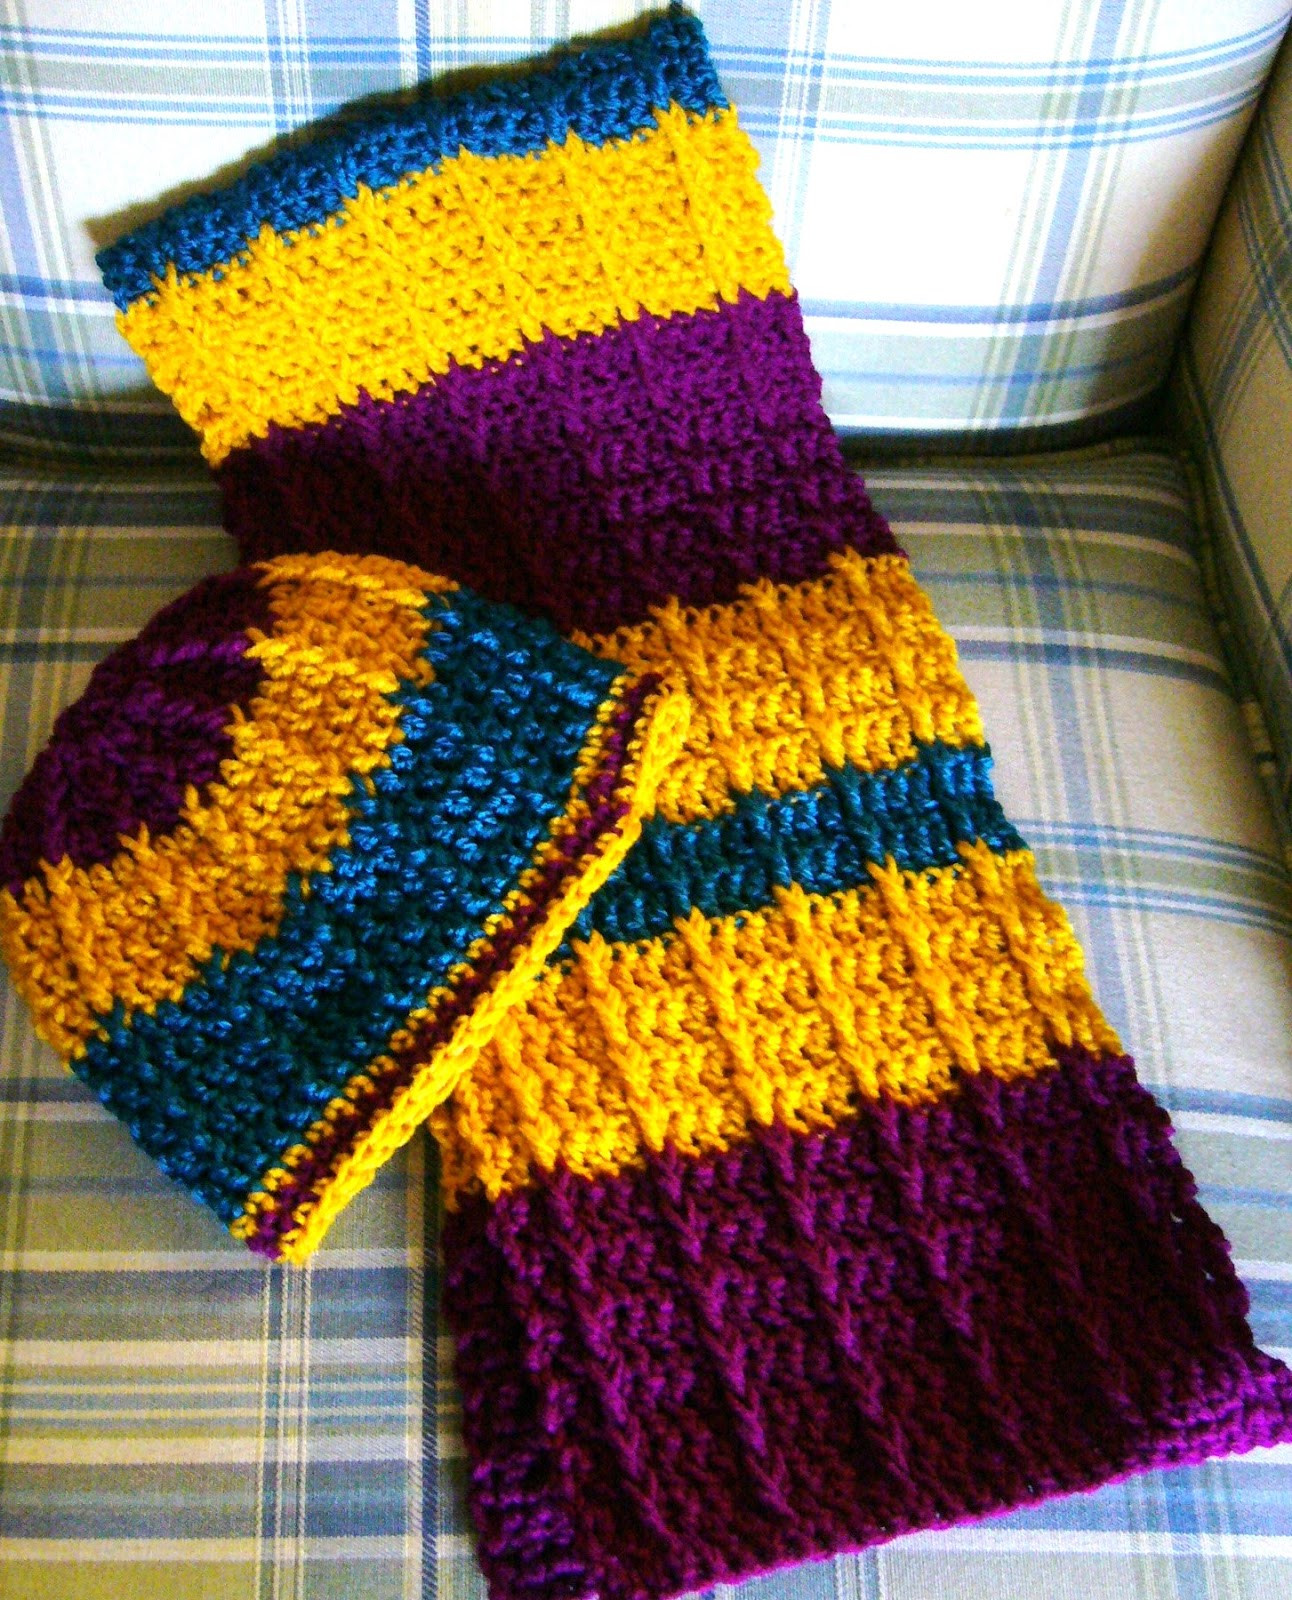 Crochet Scarf New Simply Shoeboxes Double Crochet Front Post Crochet Scarf Of Incredible 48 Images Crochet Scarf